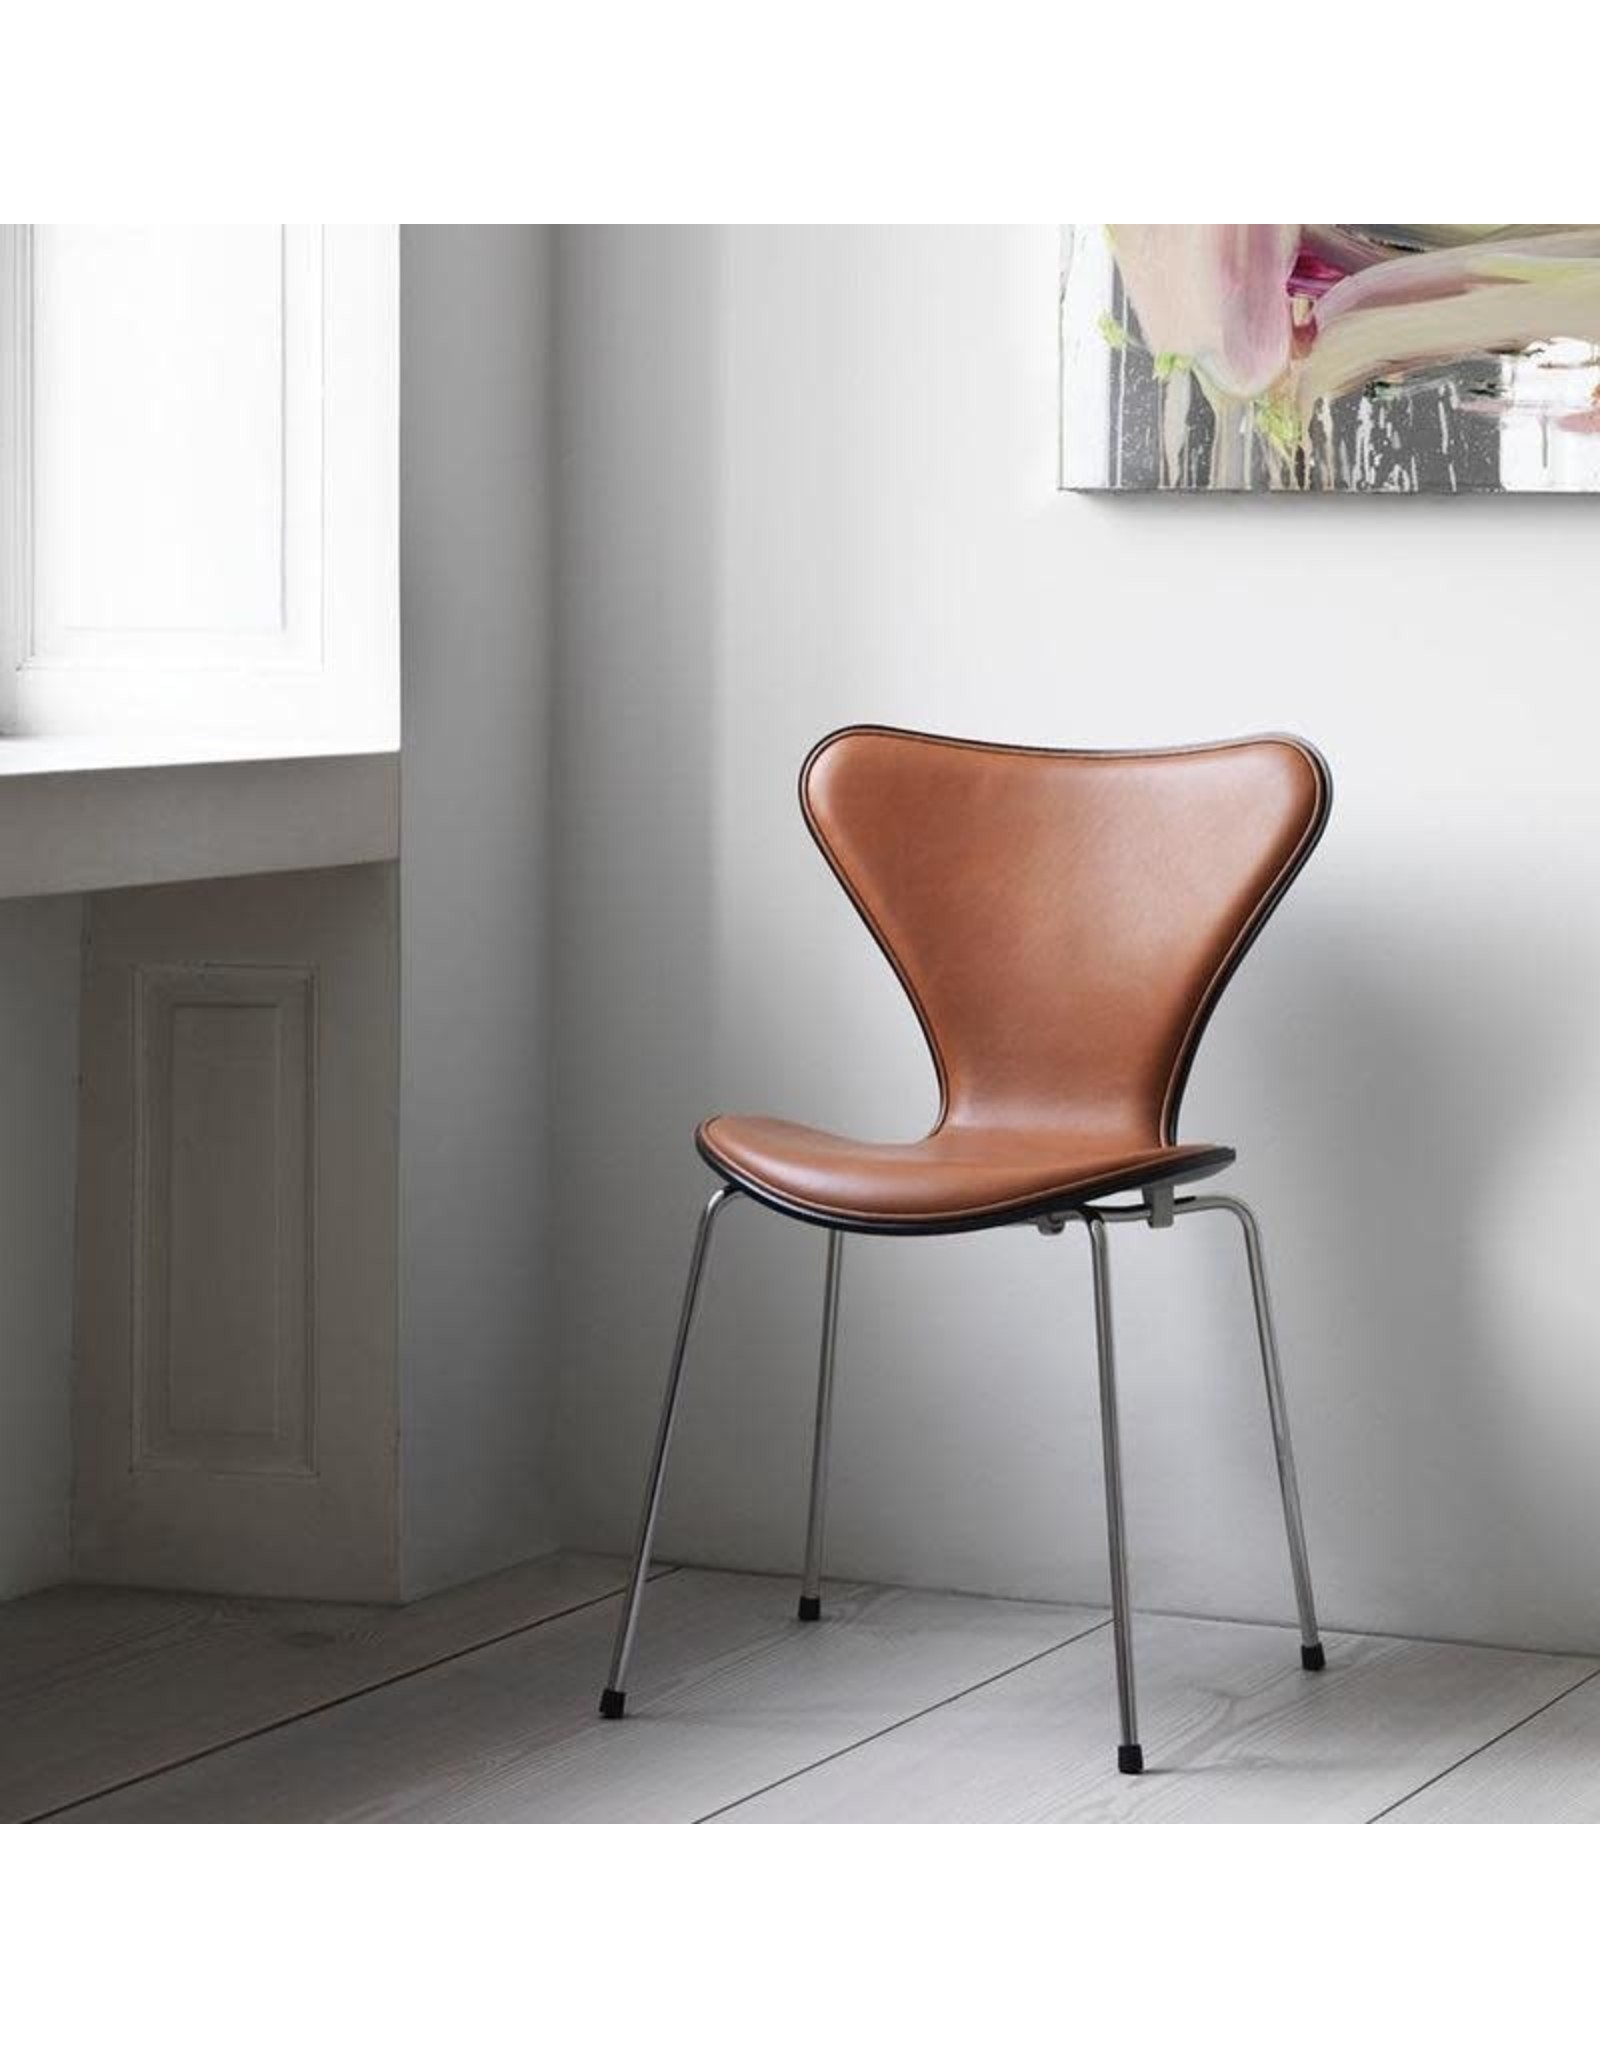 FRITZ HANSEN 3107 SERIES 7 CHAIR, FRONT UPHOLSTERED LEATHER